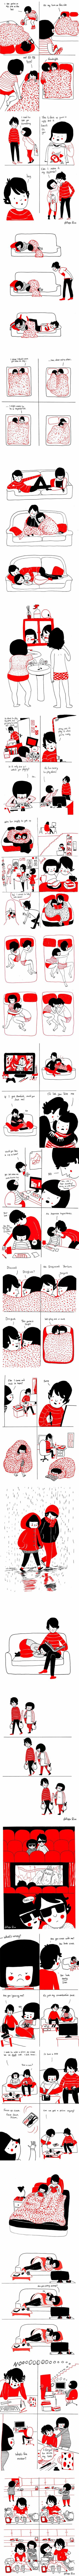 Relationships. I can't wait till our long-distance nonsense is over and we can get back to this!